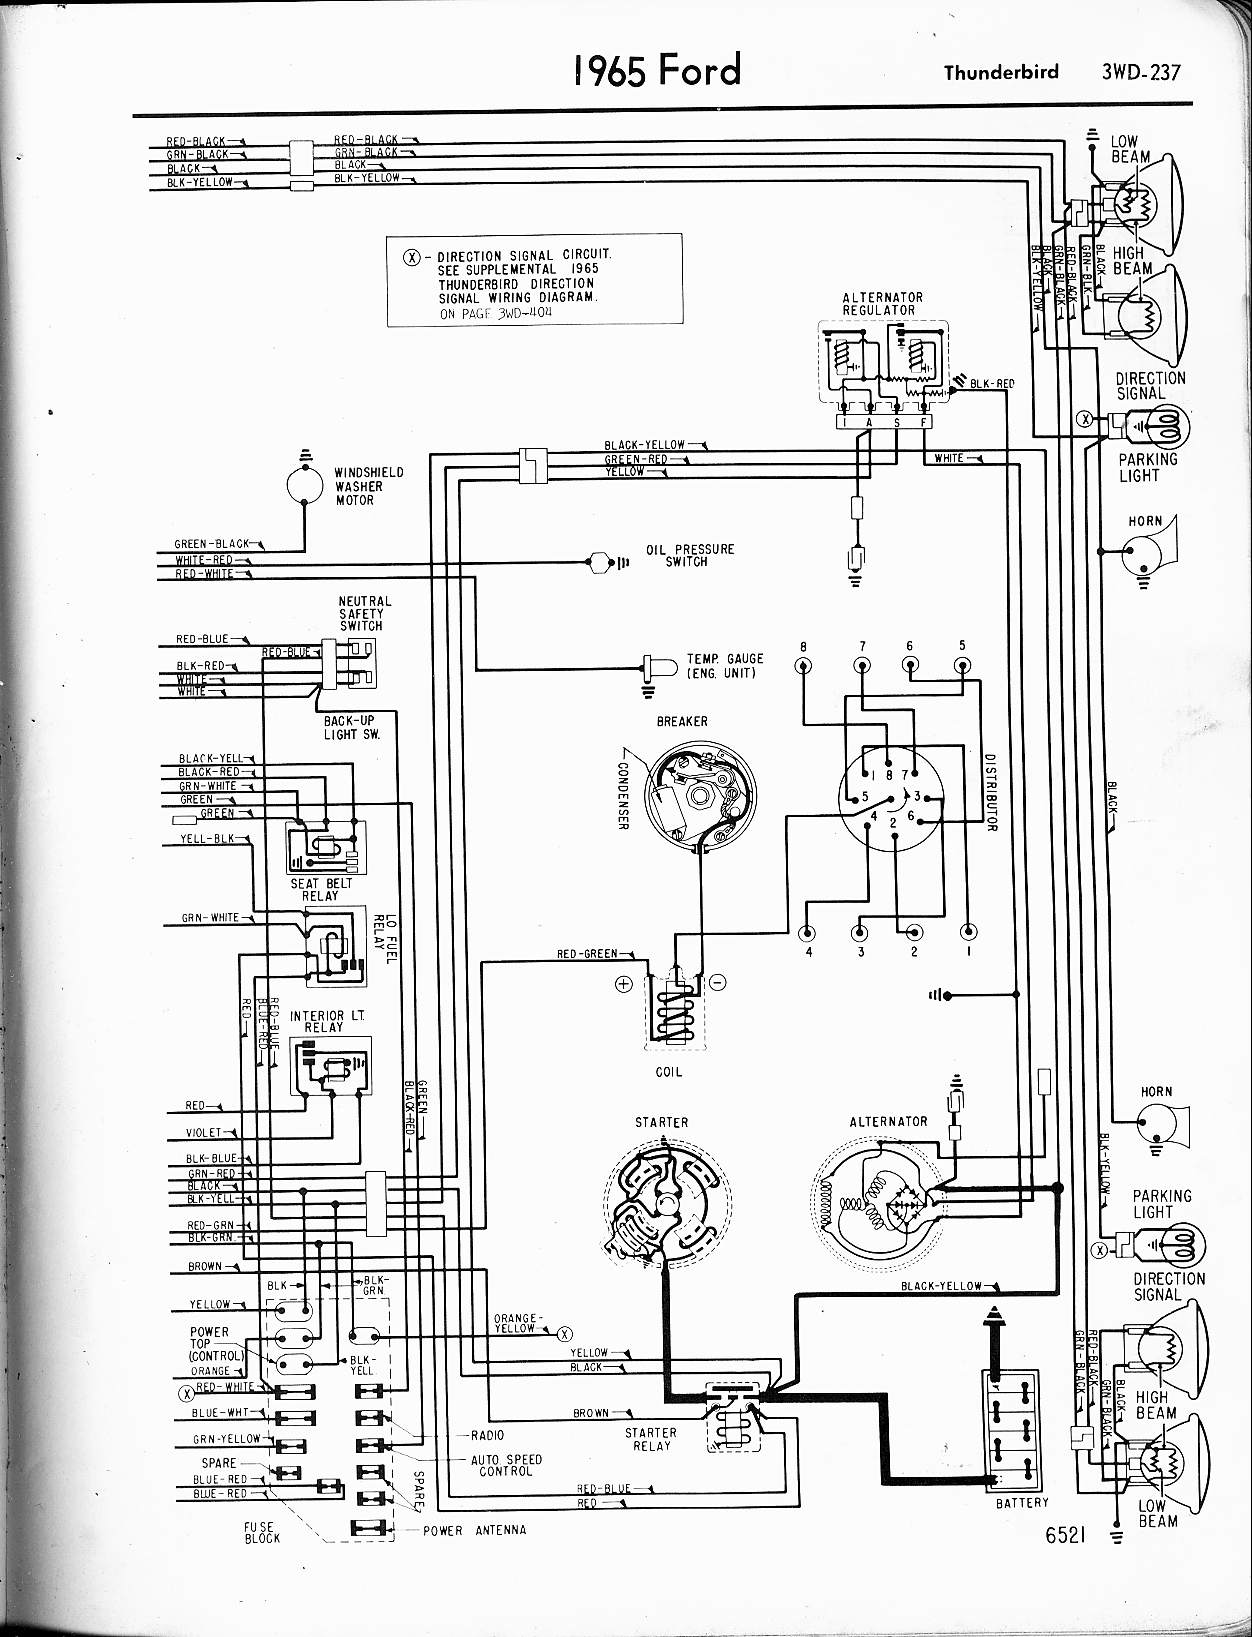 63 thunderbird voltage regulator wiring diagram simple wiring diagram 1966  thunderbird vacuum diagram 1956 ford wiring